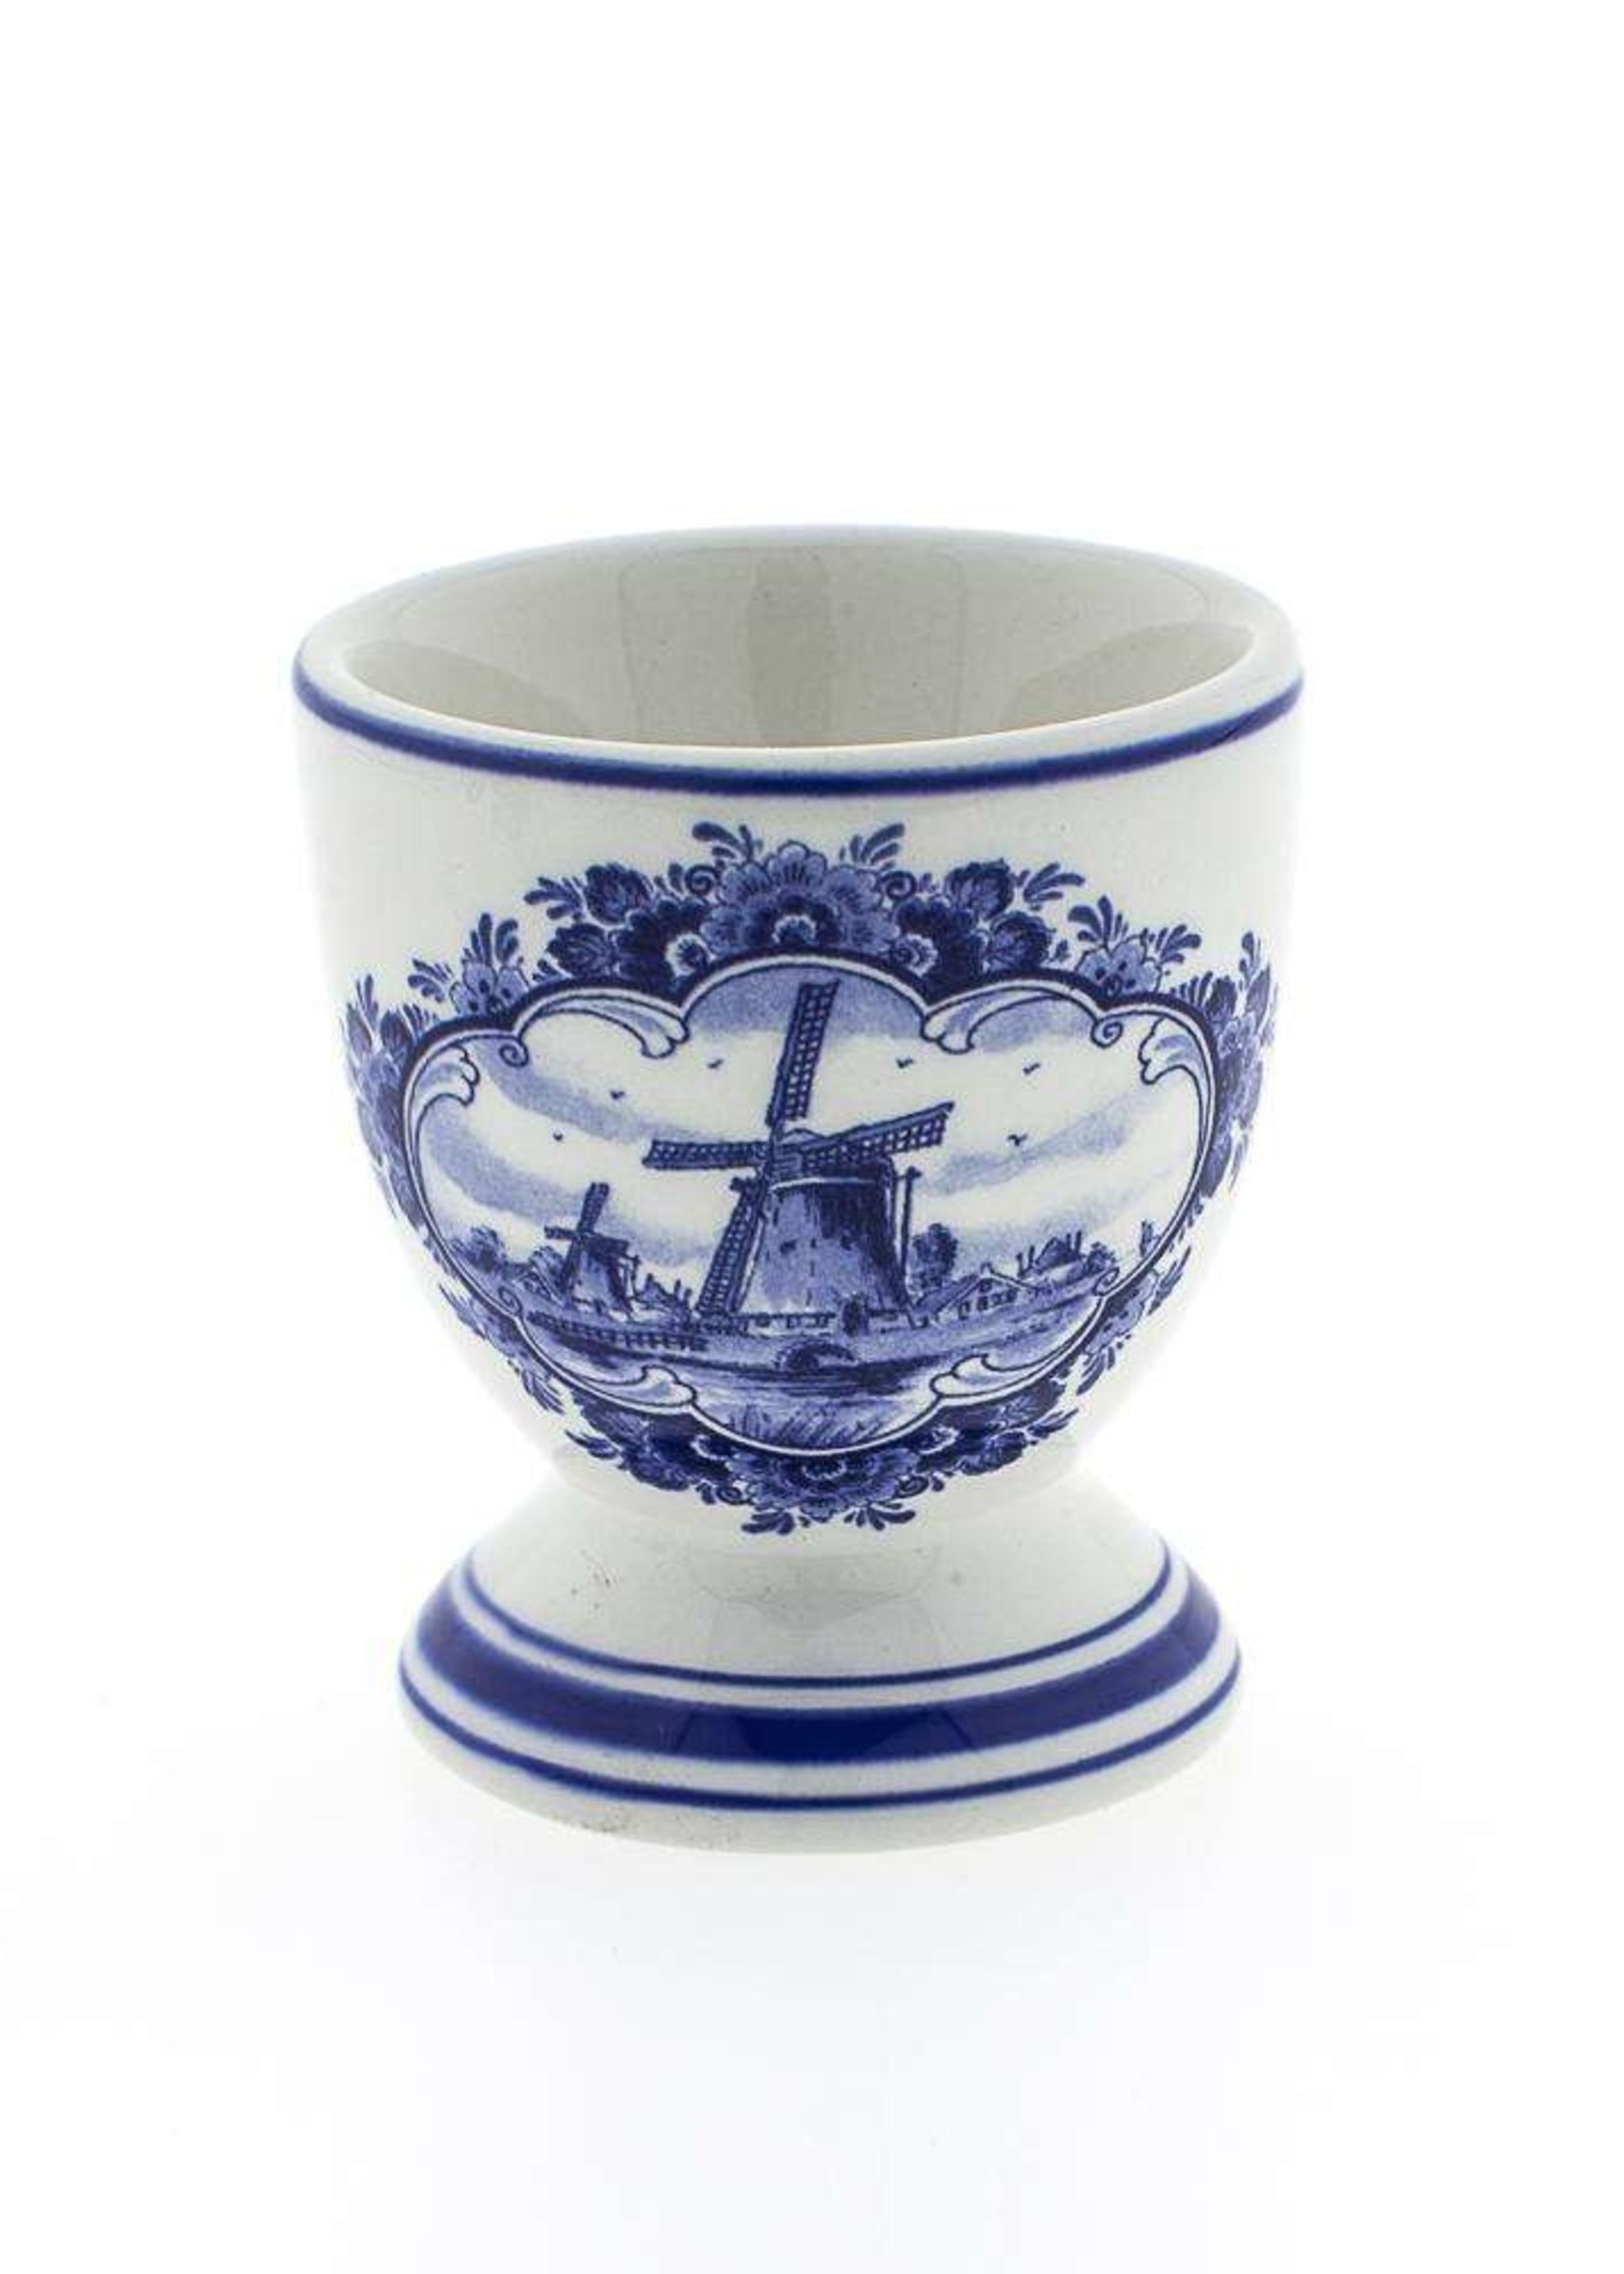 Delft Blue Egg Cup with a Windmill